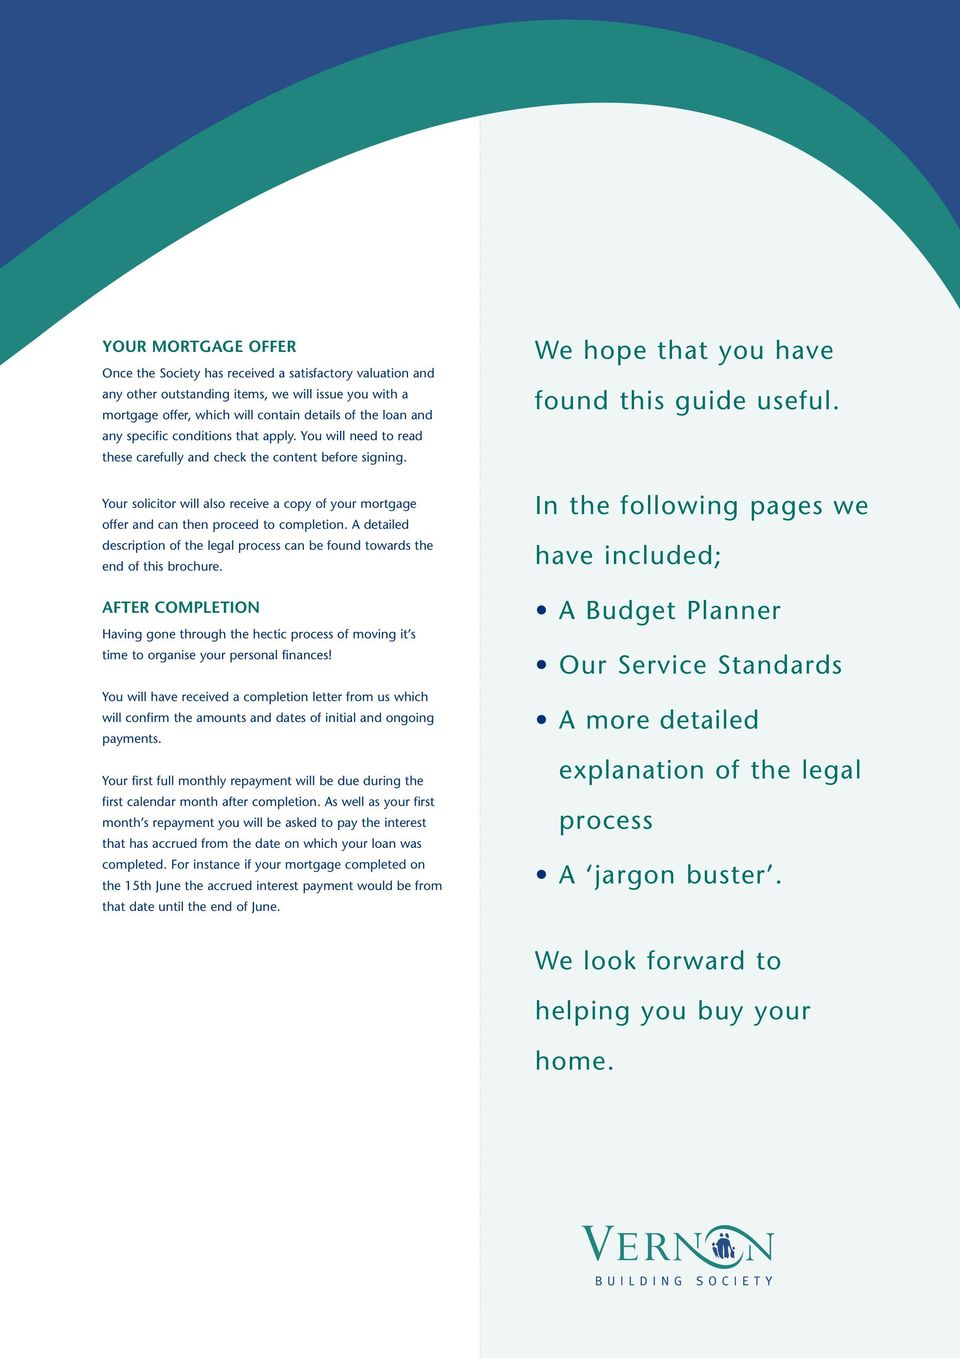 Your solicitor will also receive a copy of your mortgage offer and can then proceed to completion. A detailed description of the legal process can be found towards the end of this brochure.